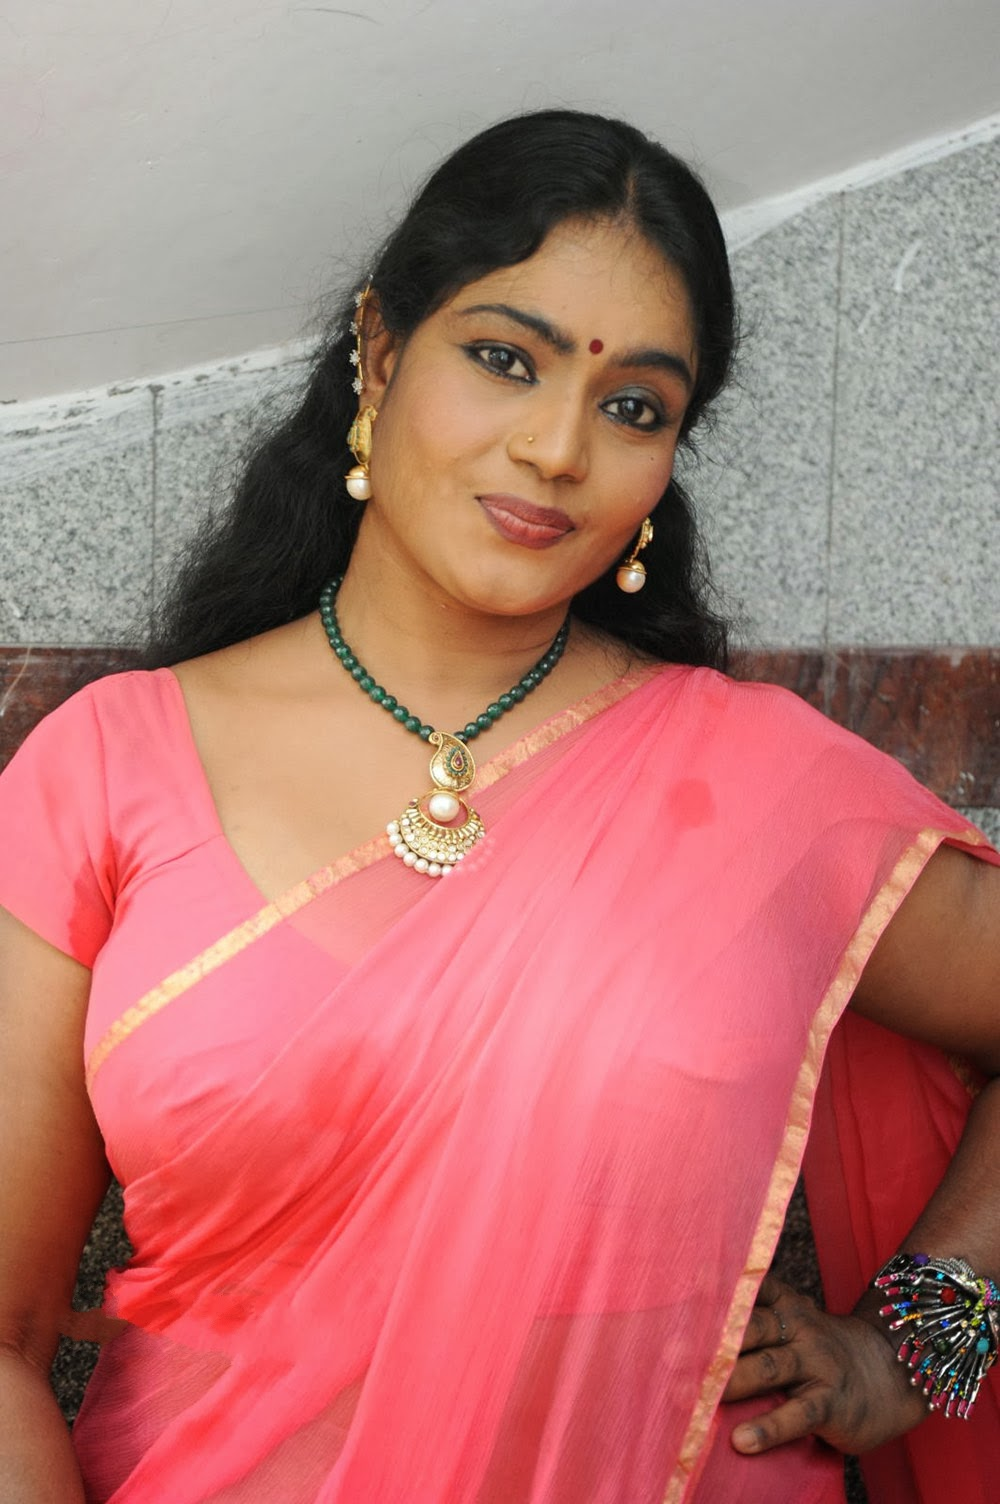 jayavani saree latest actress tollywood movie rajmahal shoot movies spicy stills pic